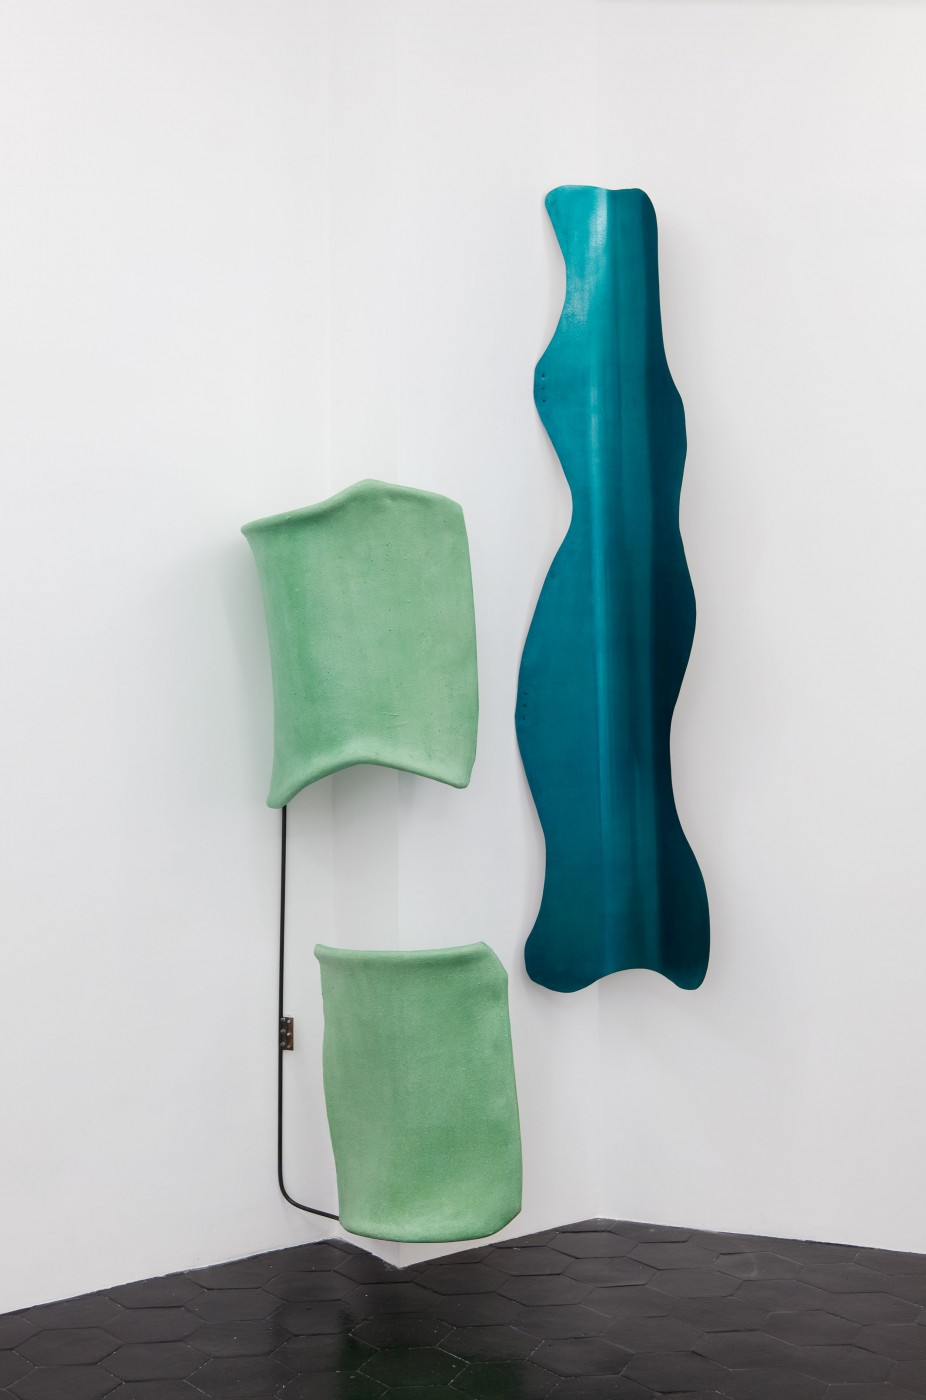 Her Curves  Interior biomorphic attachment (feeling natural and closer to dreams) , 2014  